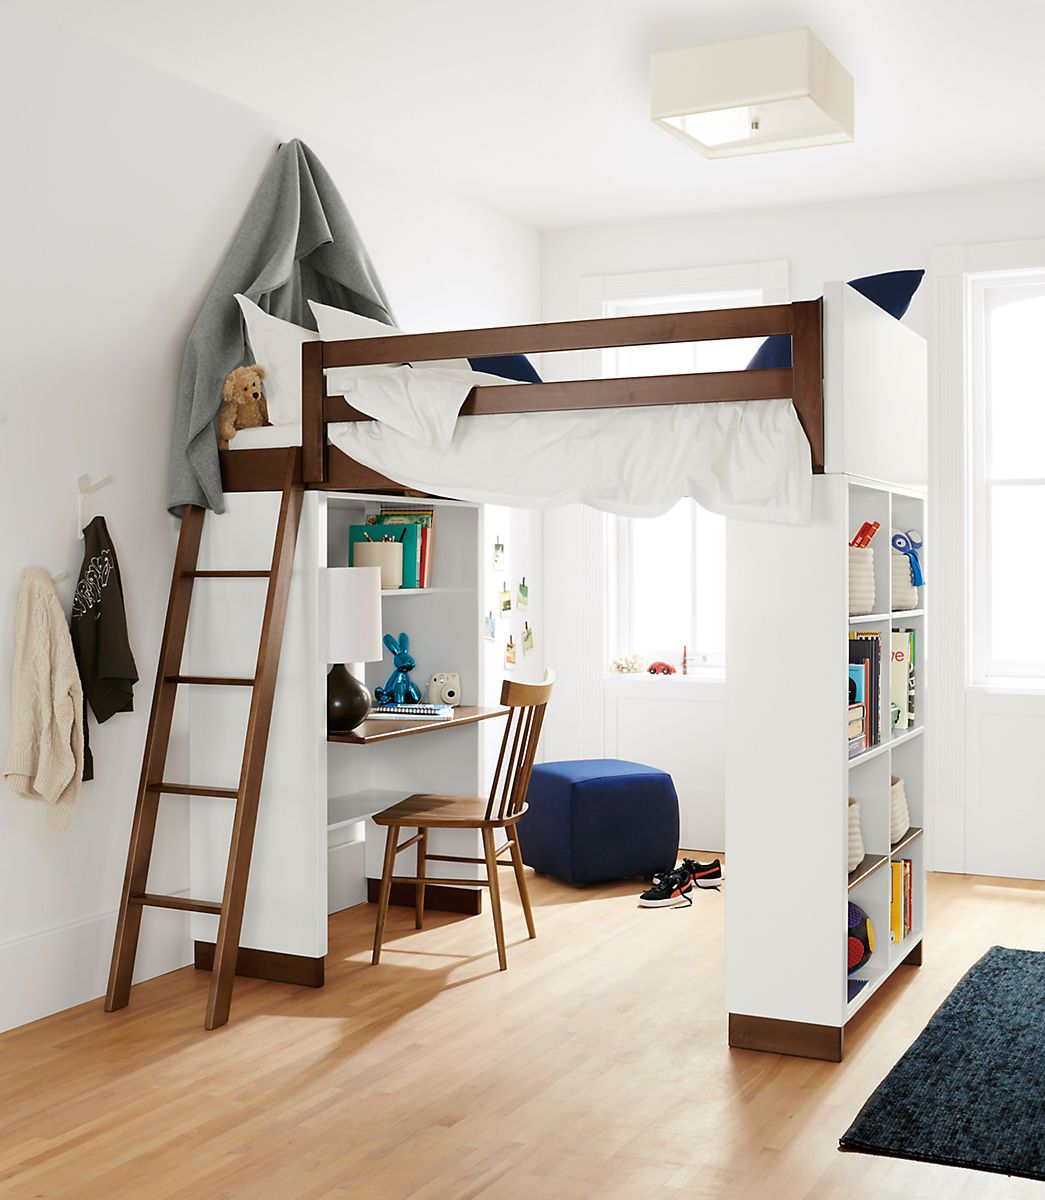 kids hinges covers orange beds woven blue rug loft wooden color set sheet desk plaid cabinet storage metal single bed pillow and black white computer unfinished originalviews bunk with rectangle